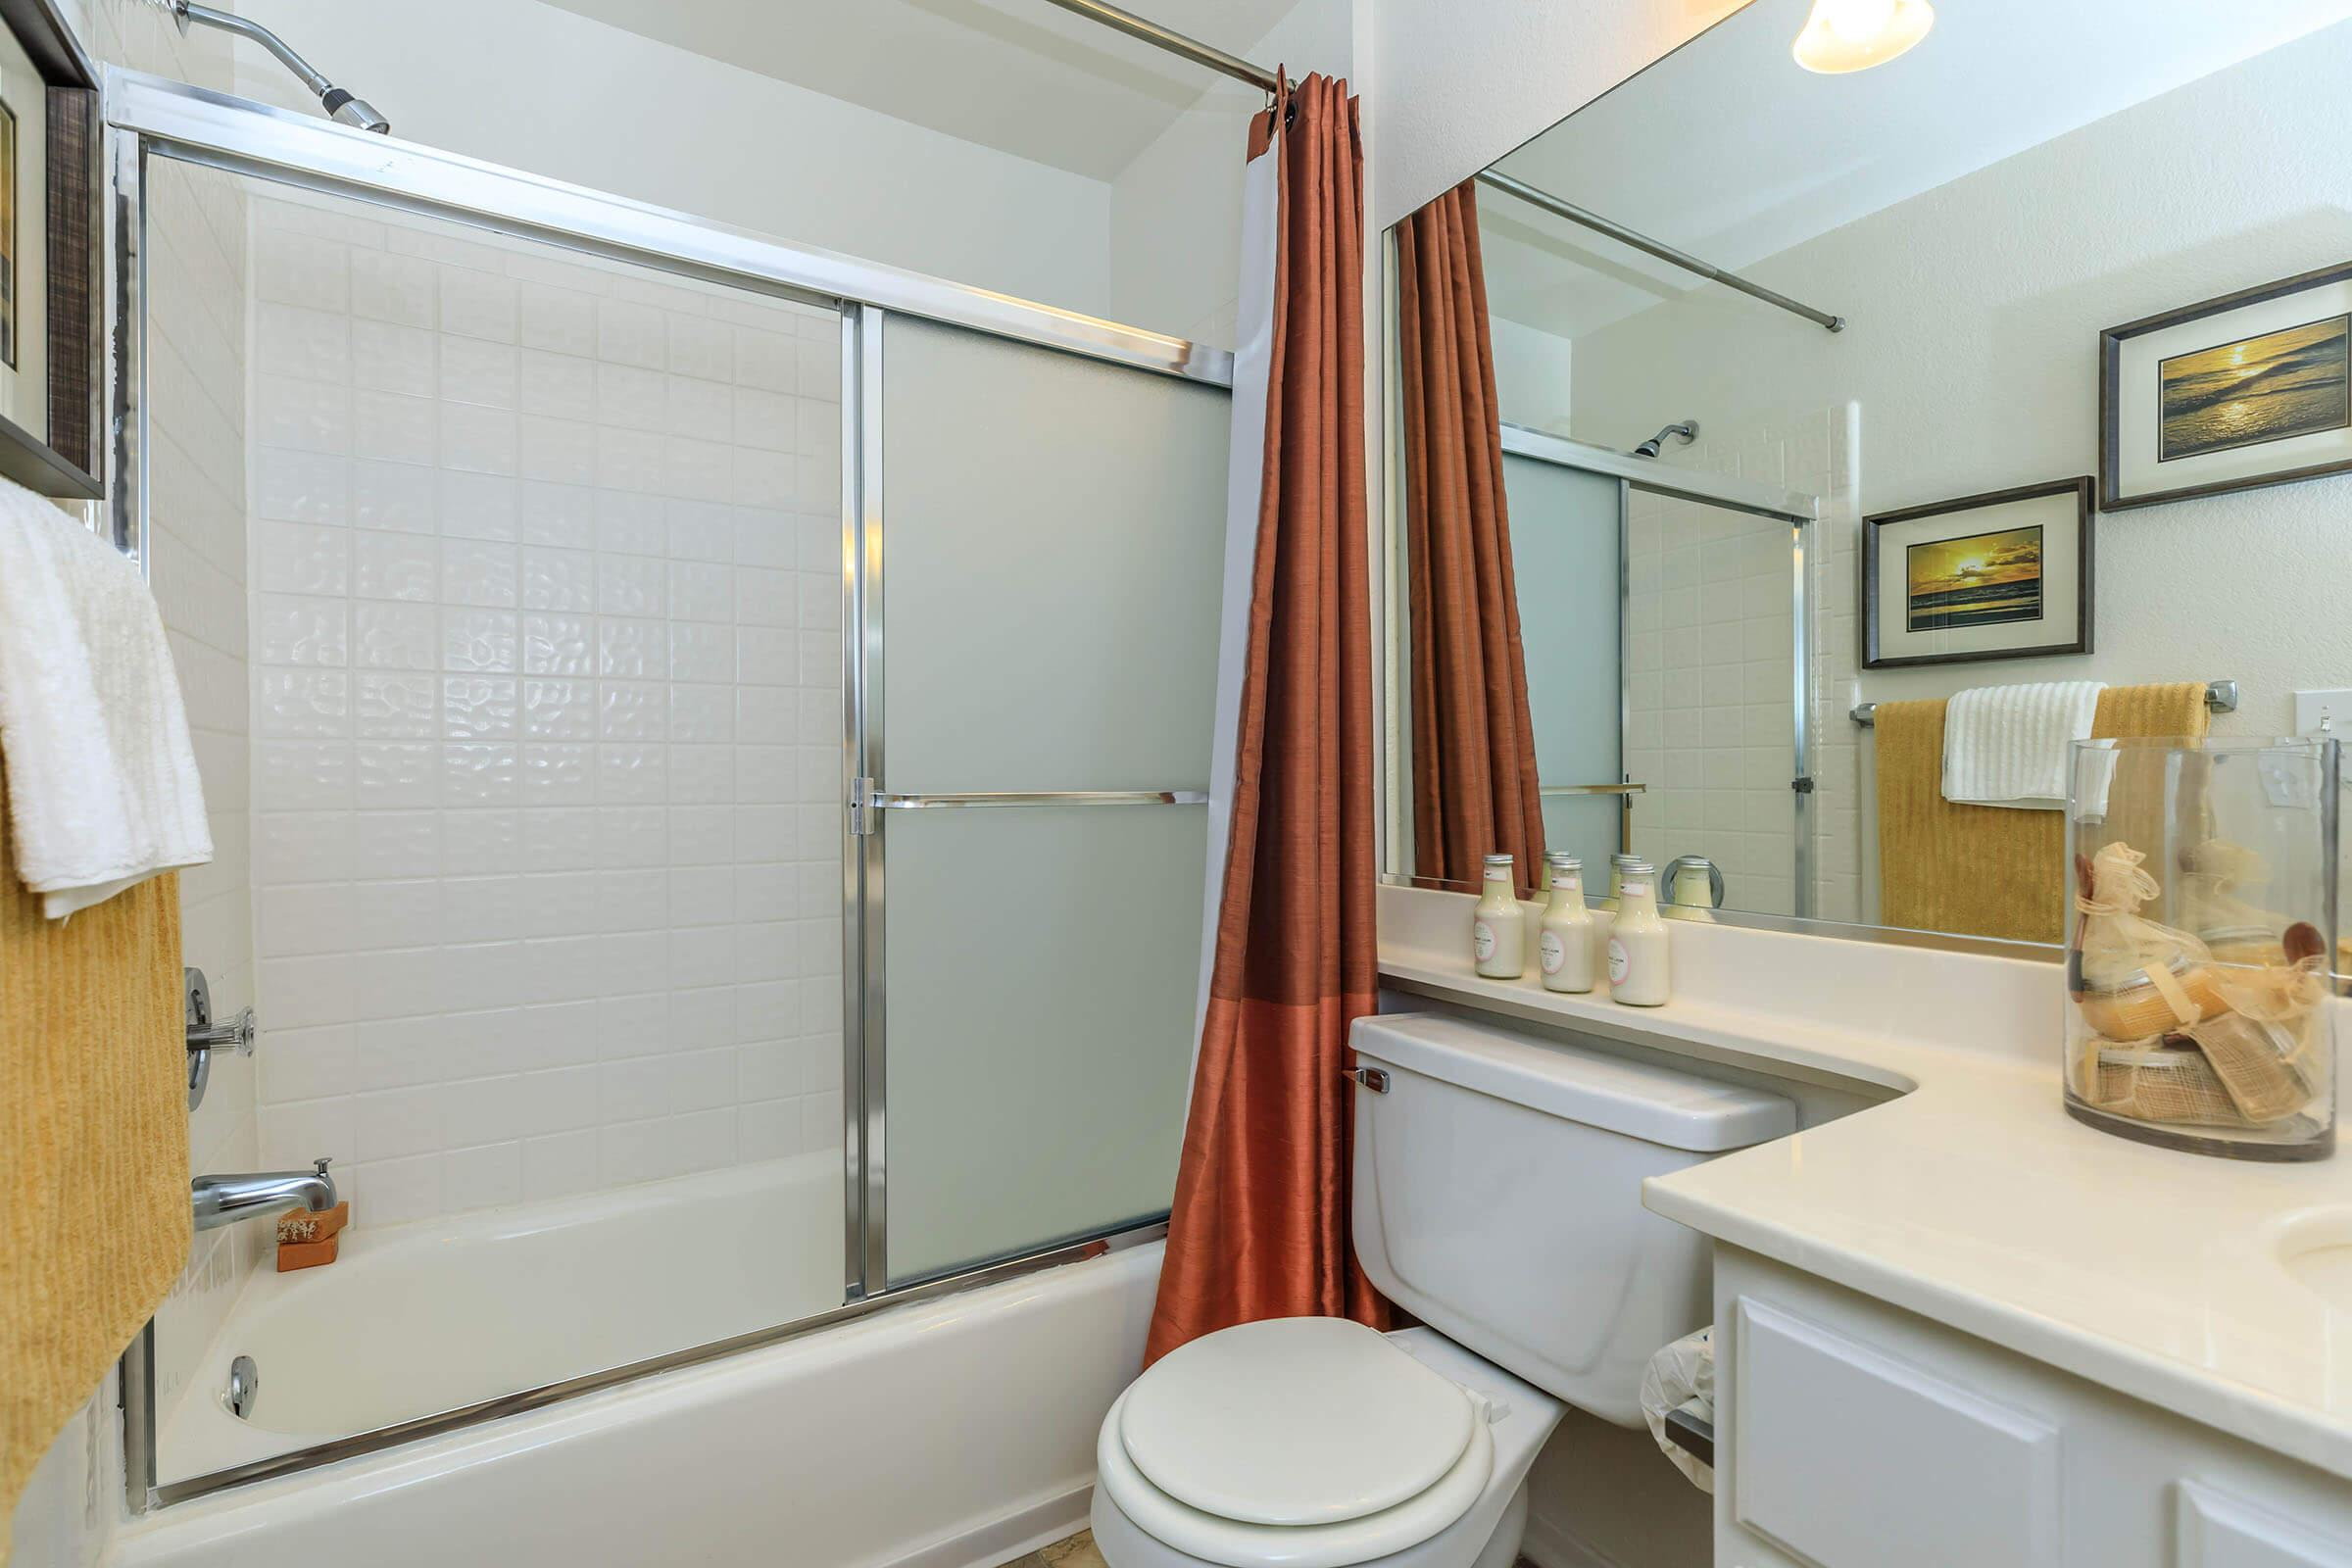 Bathroom with sliding glass shower door and red shower curtain